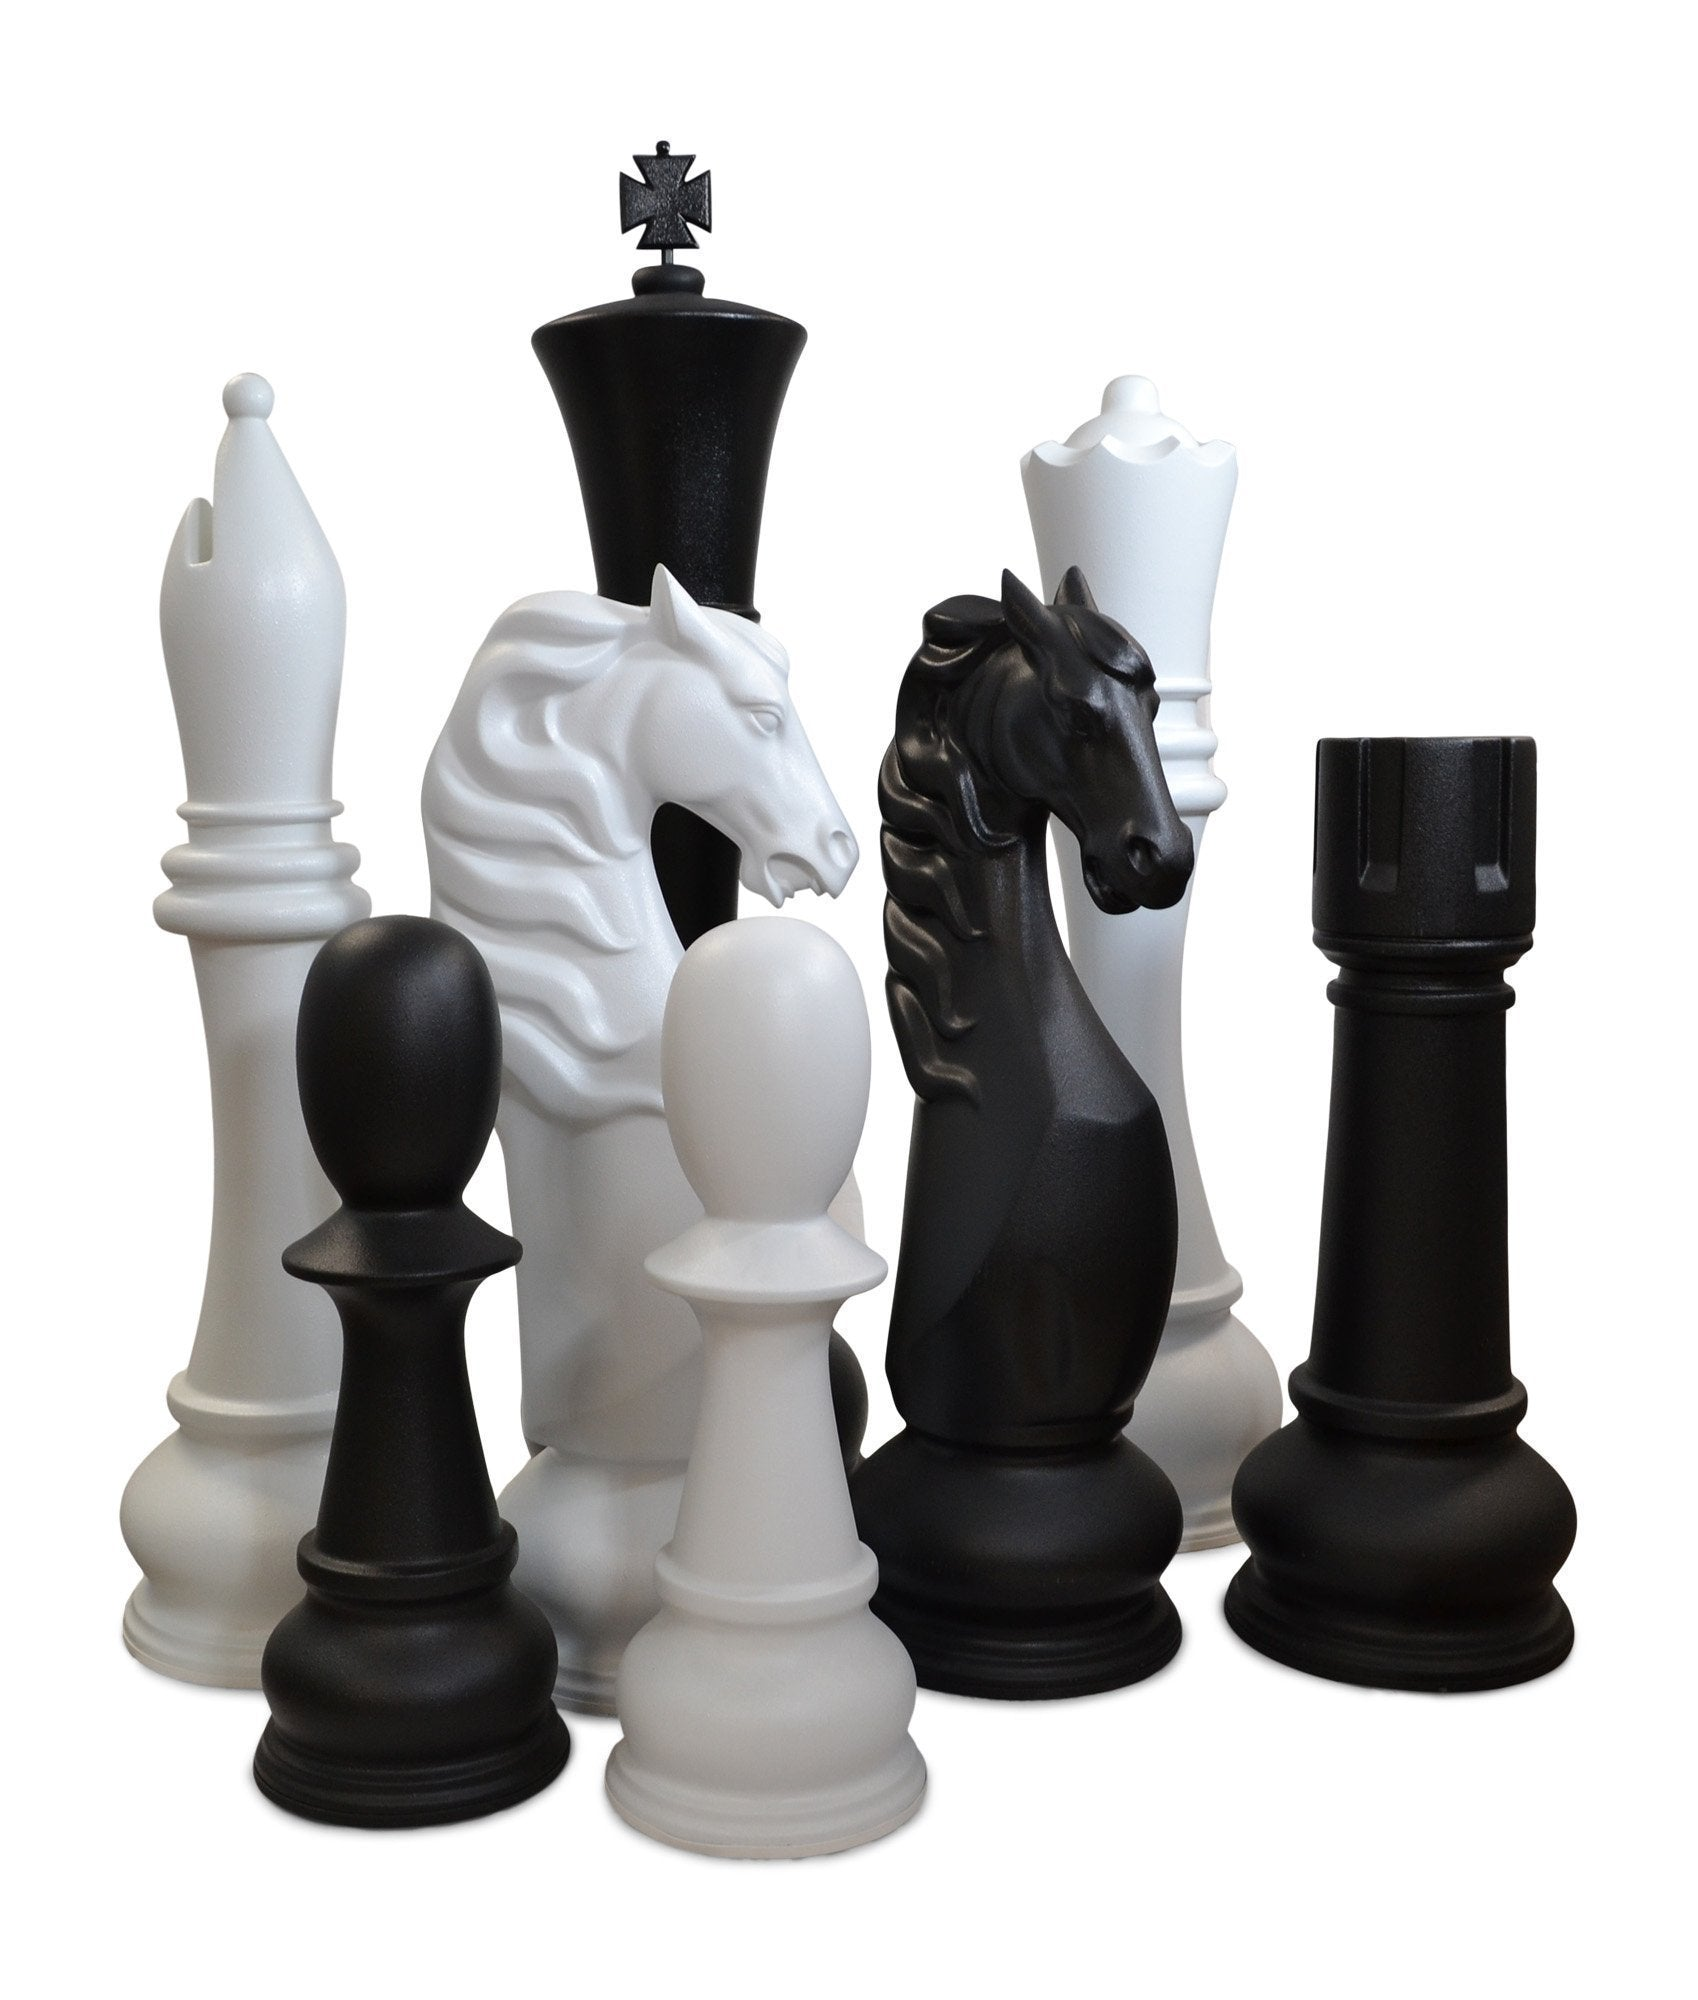 "72"" Fiberglass Giant Chess Set"